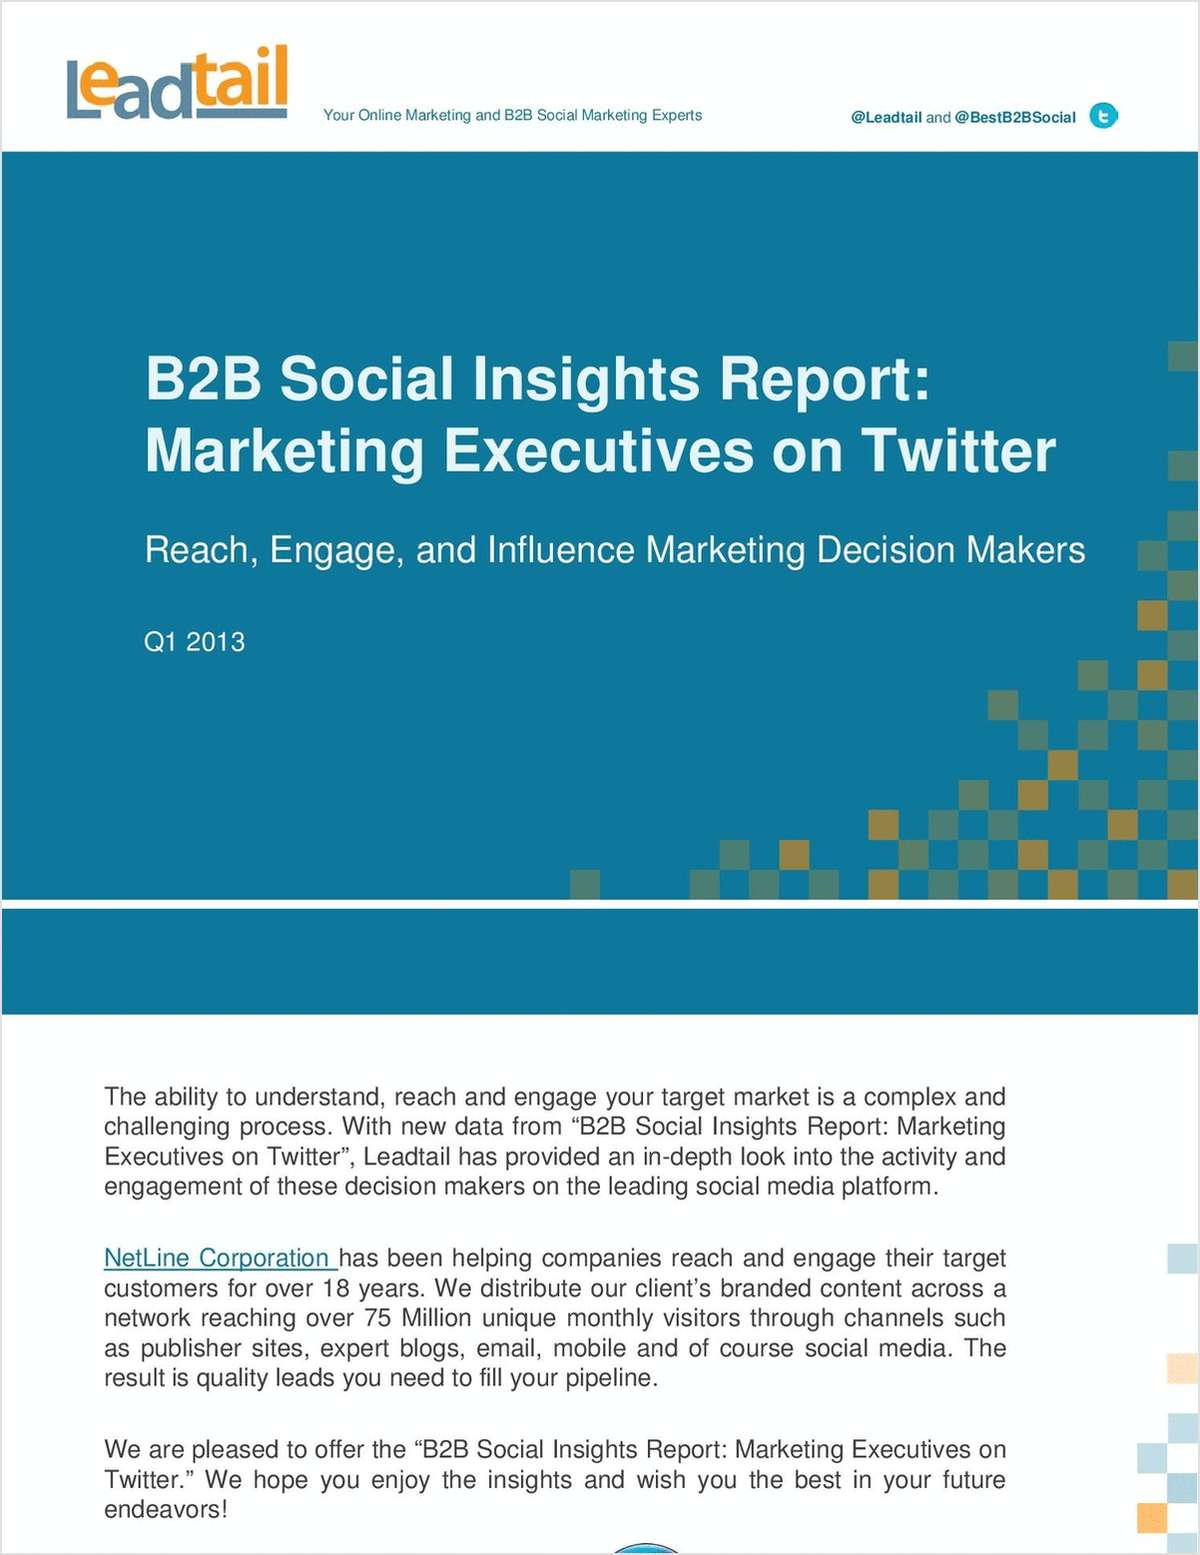 Q1 2013 B2B Social Insights Report: Marketing Executives on Twitter